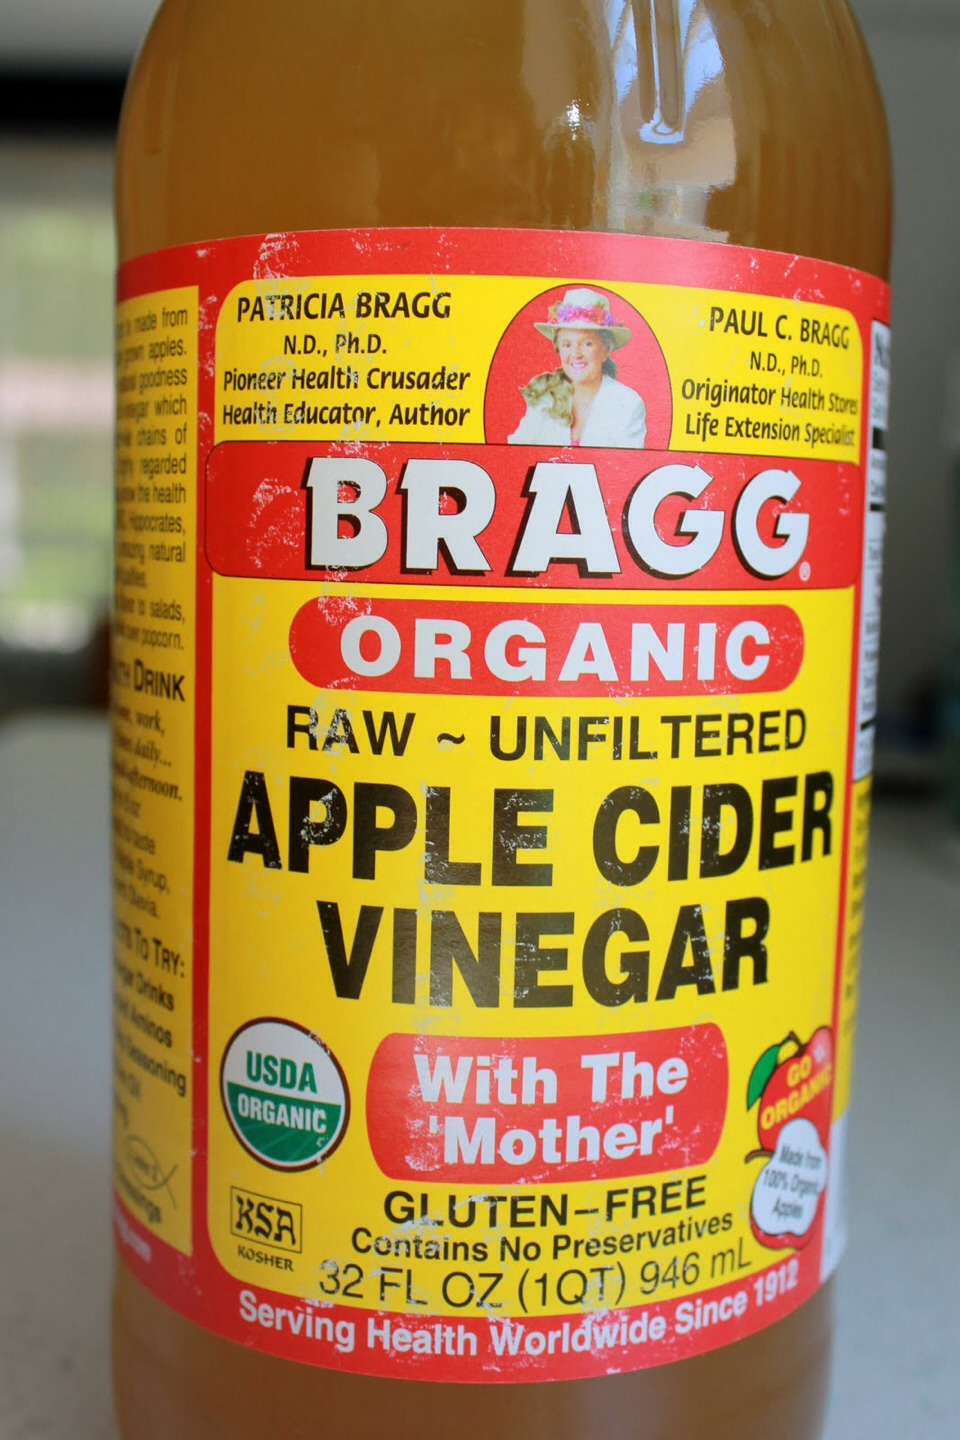 Take a shot of Apple cider vinegar. This is good for cleansing the body. People aware by it saying that this can help with sickness.